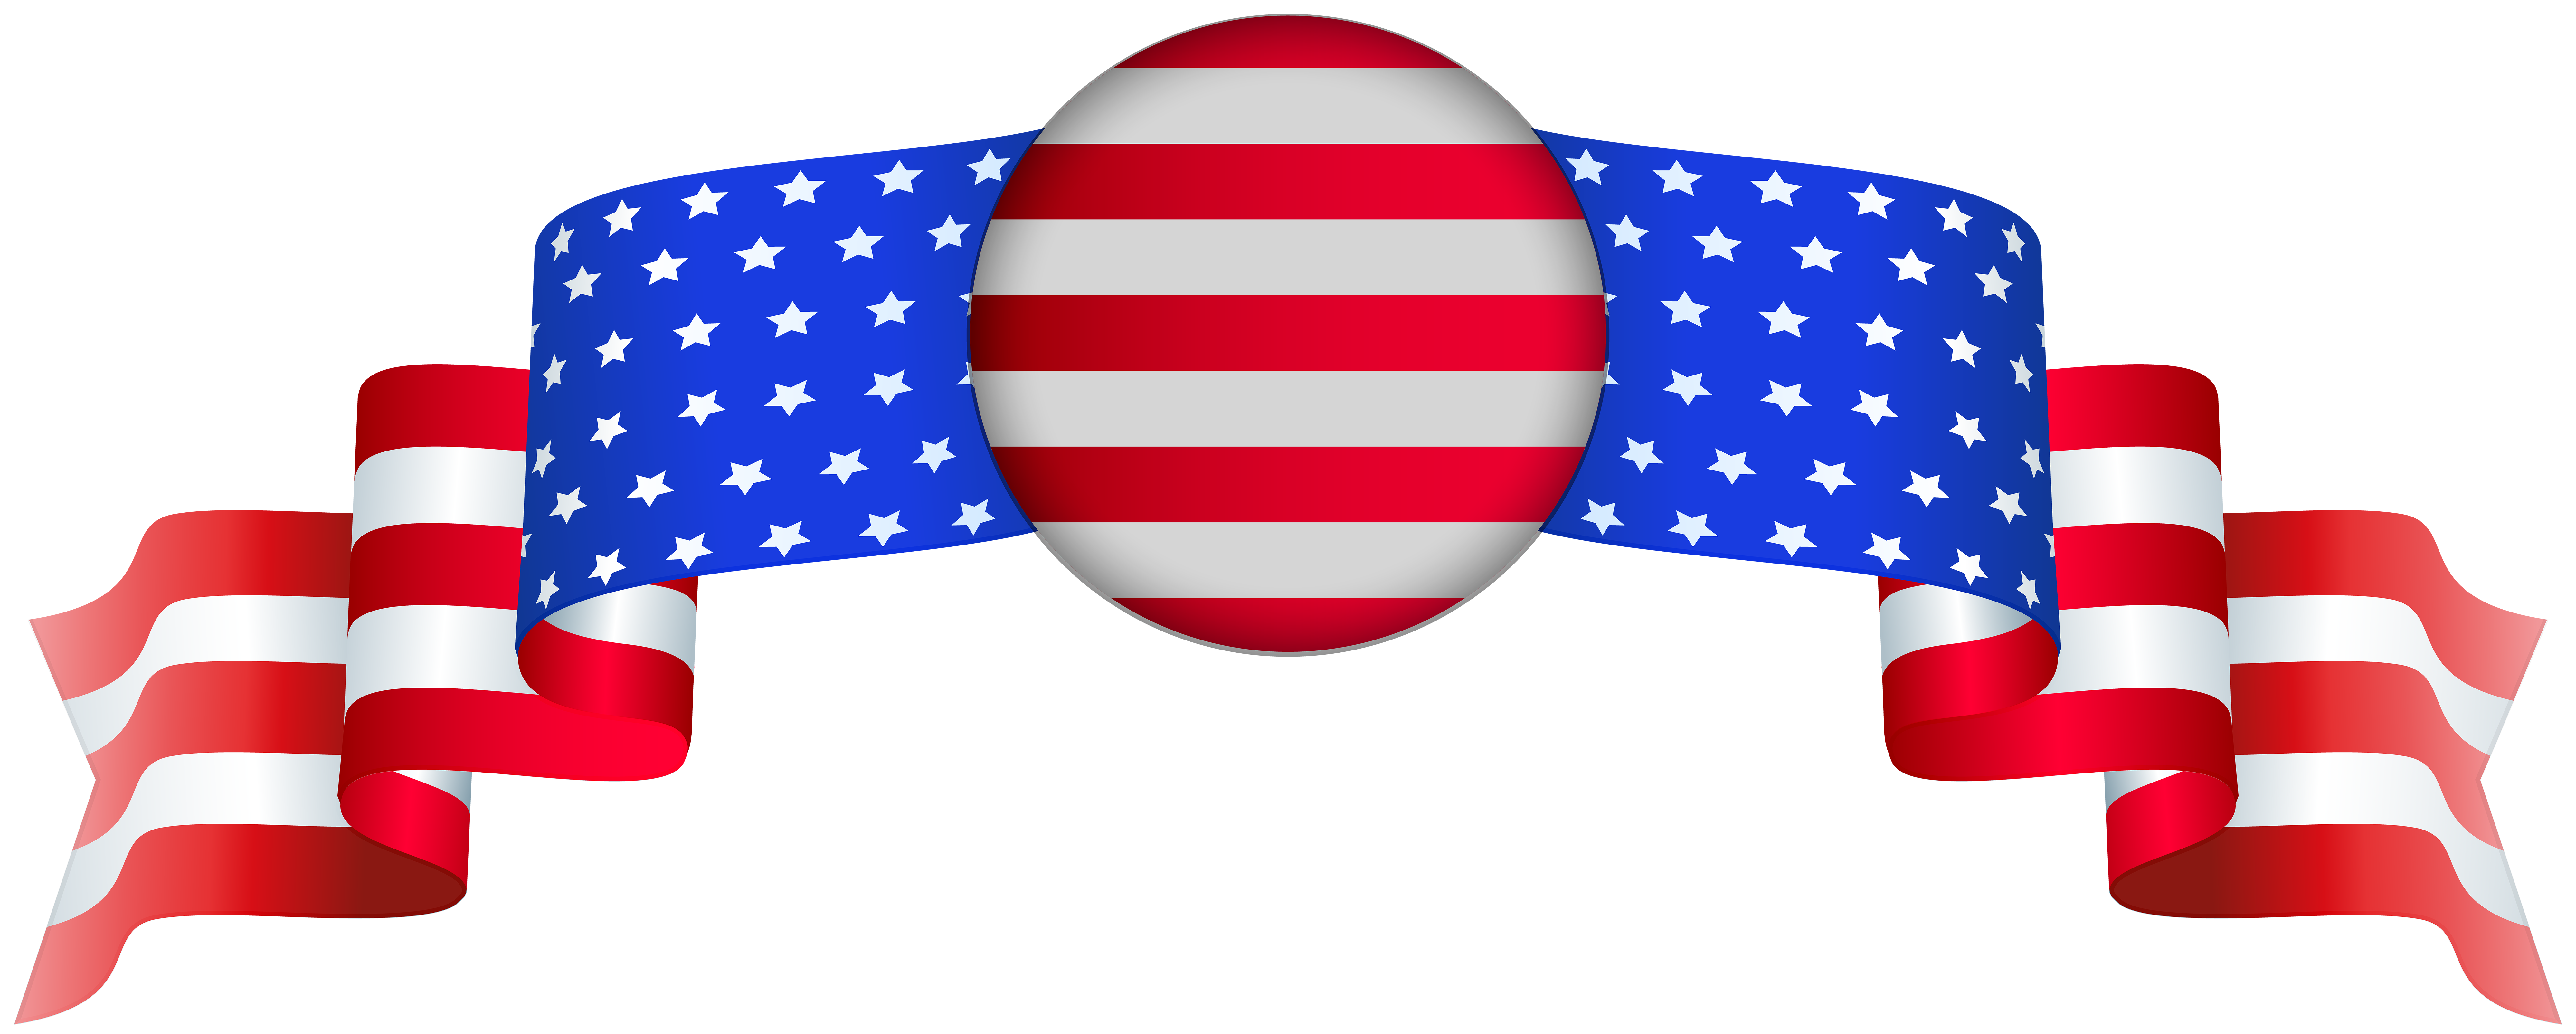 Png clip art image. July clipart banner usa